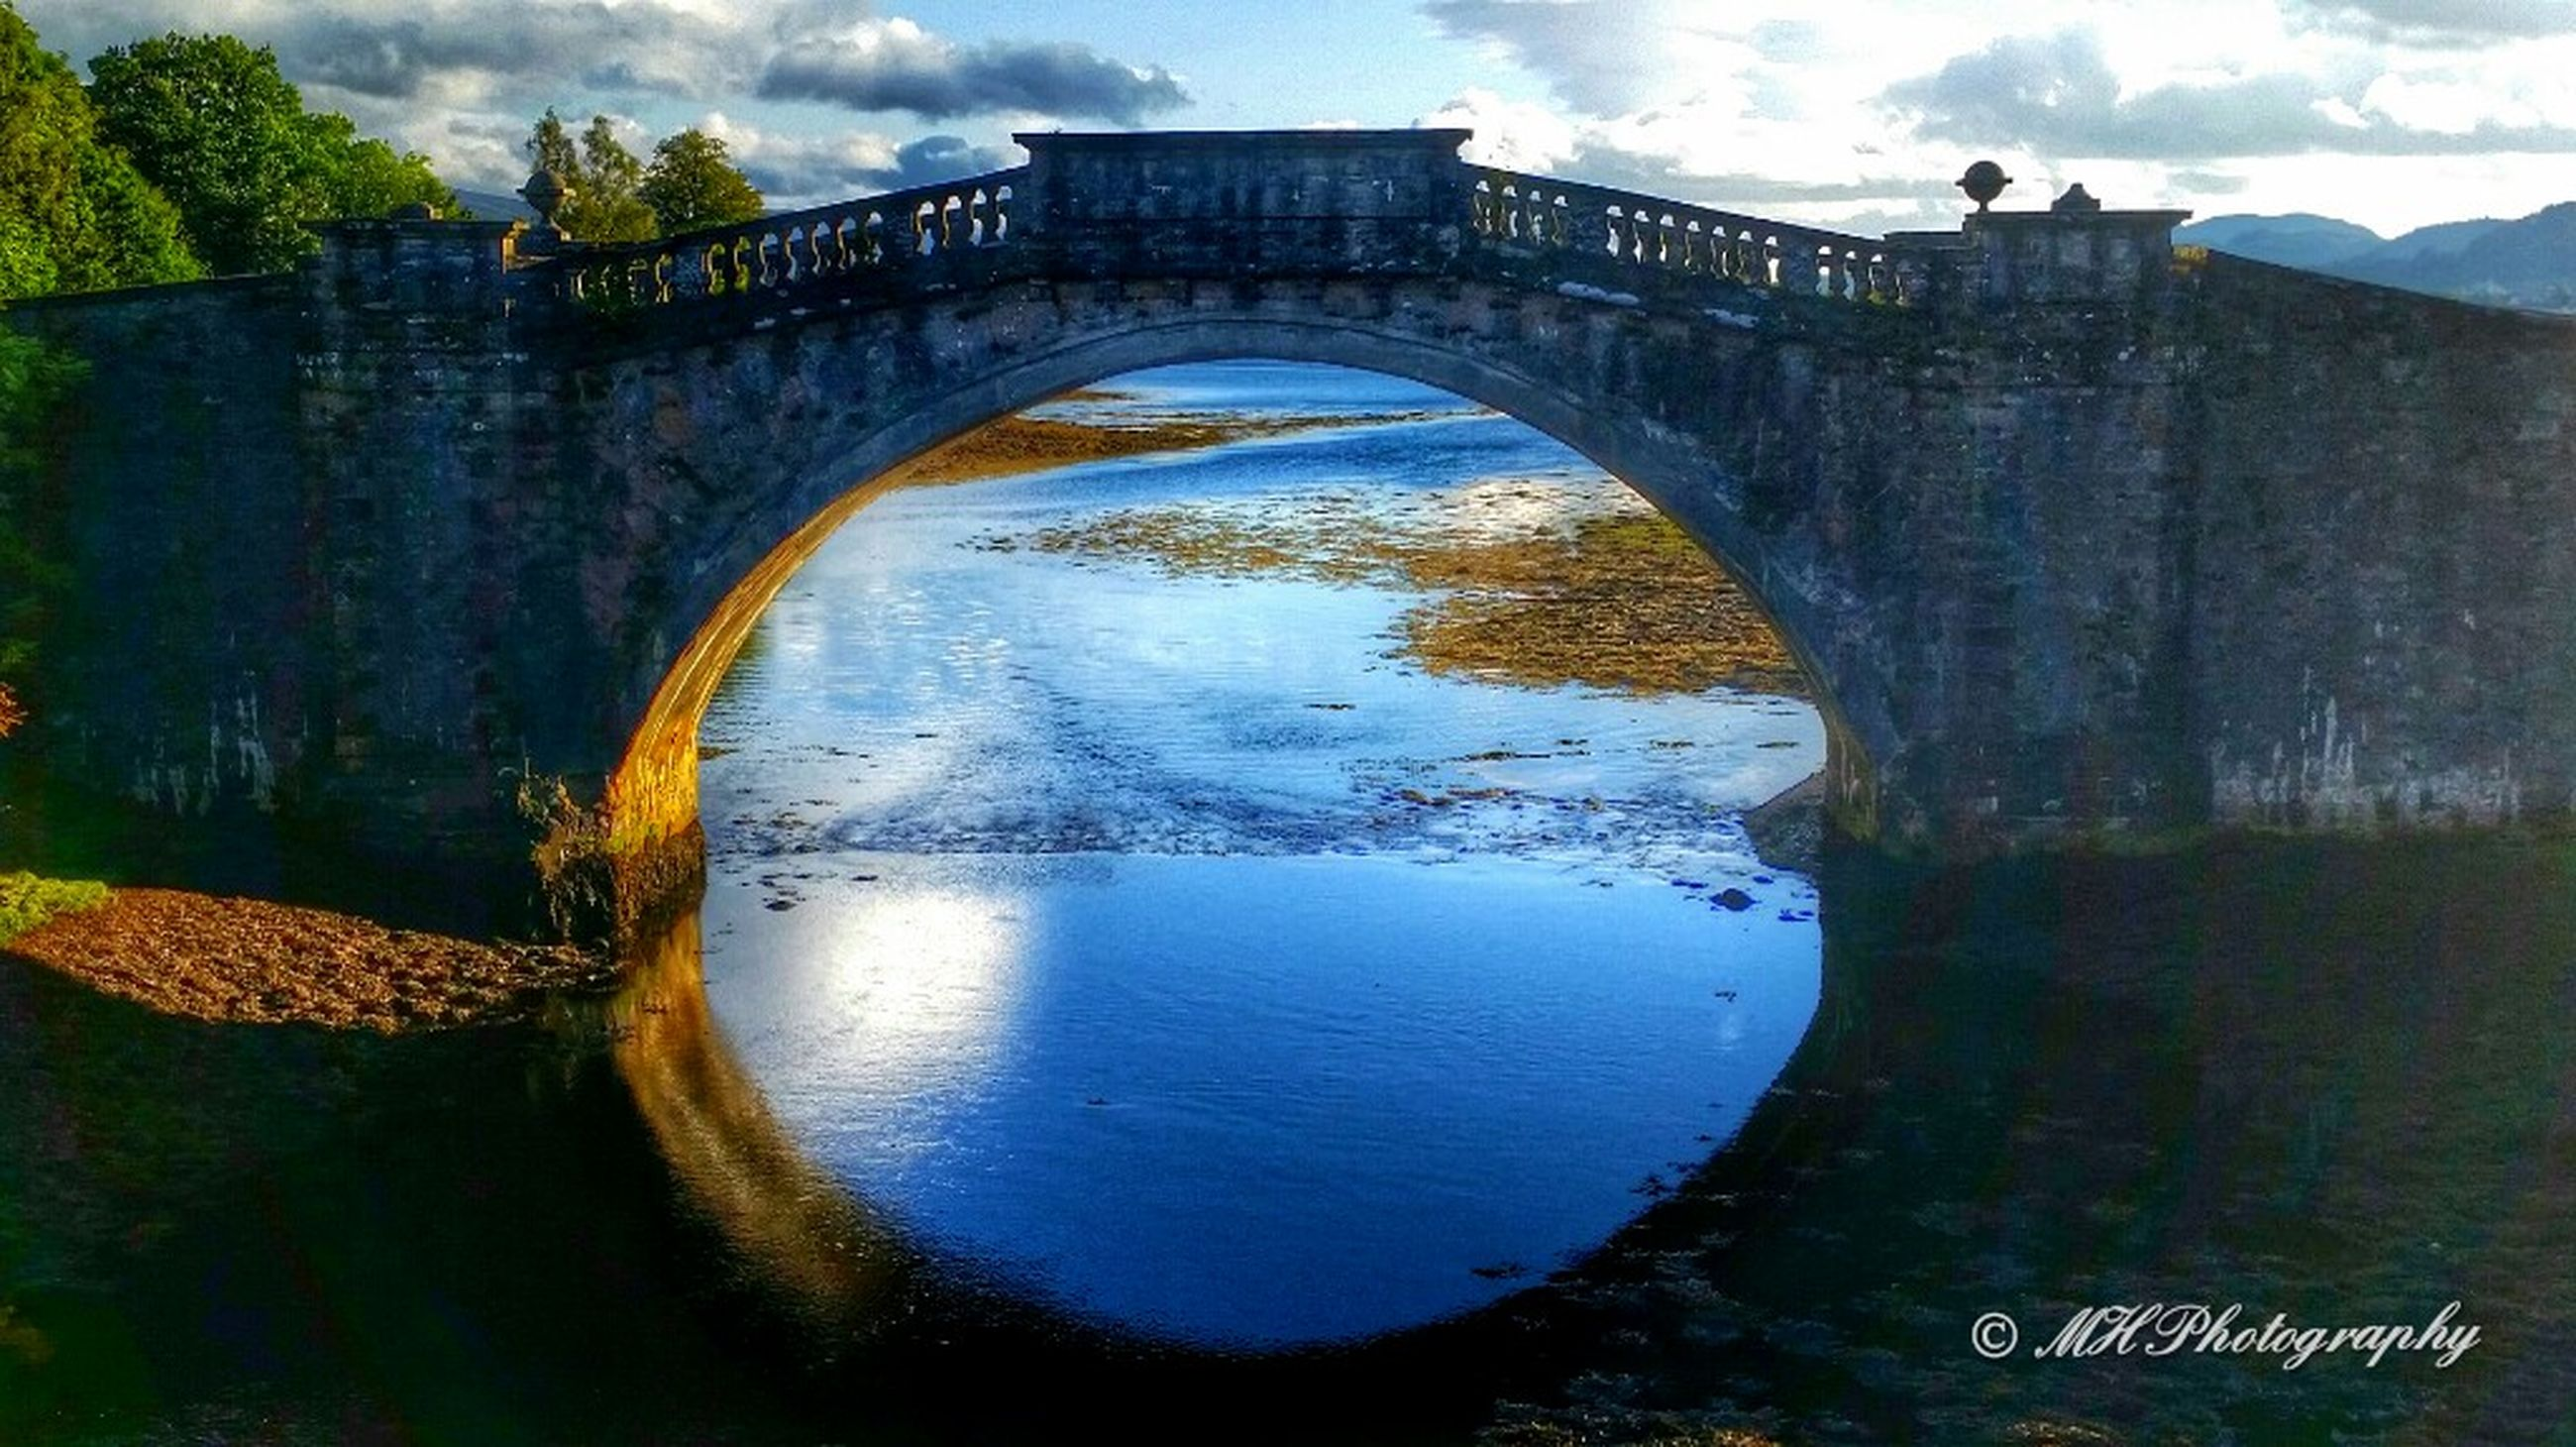 arch, built structure, architecture, water, bridge - man made structure, connection, arch bridge, sky, river, tree, reflection, cloud - sky, bridge, nature, day, tranquility, no people, outdoors, building exterior, canal